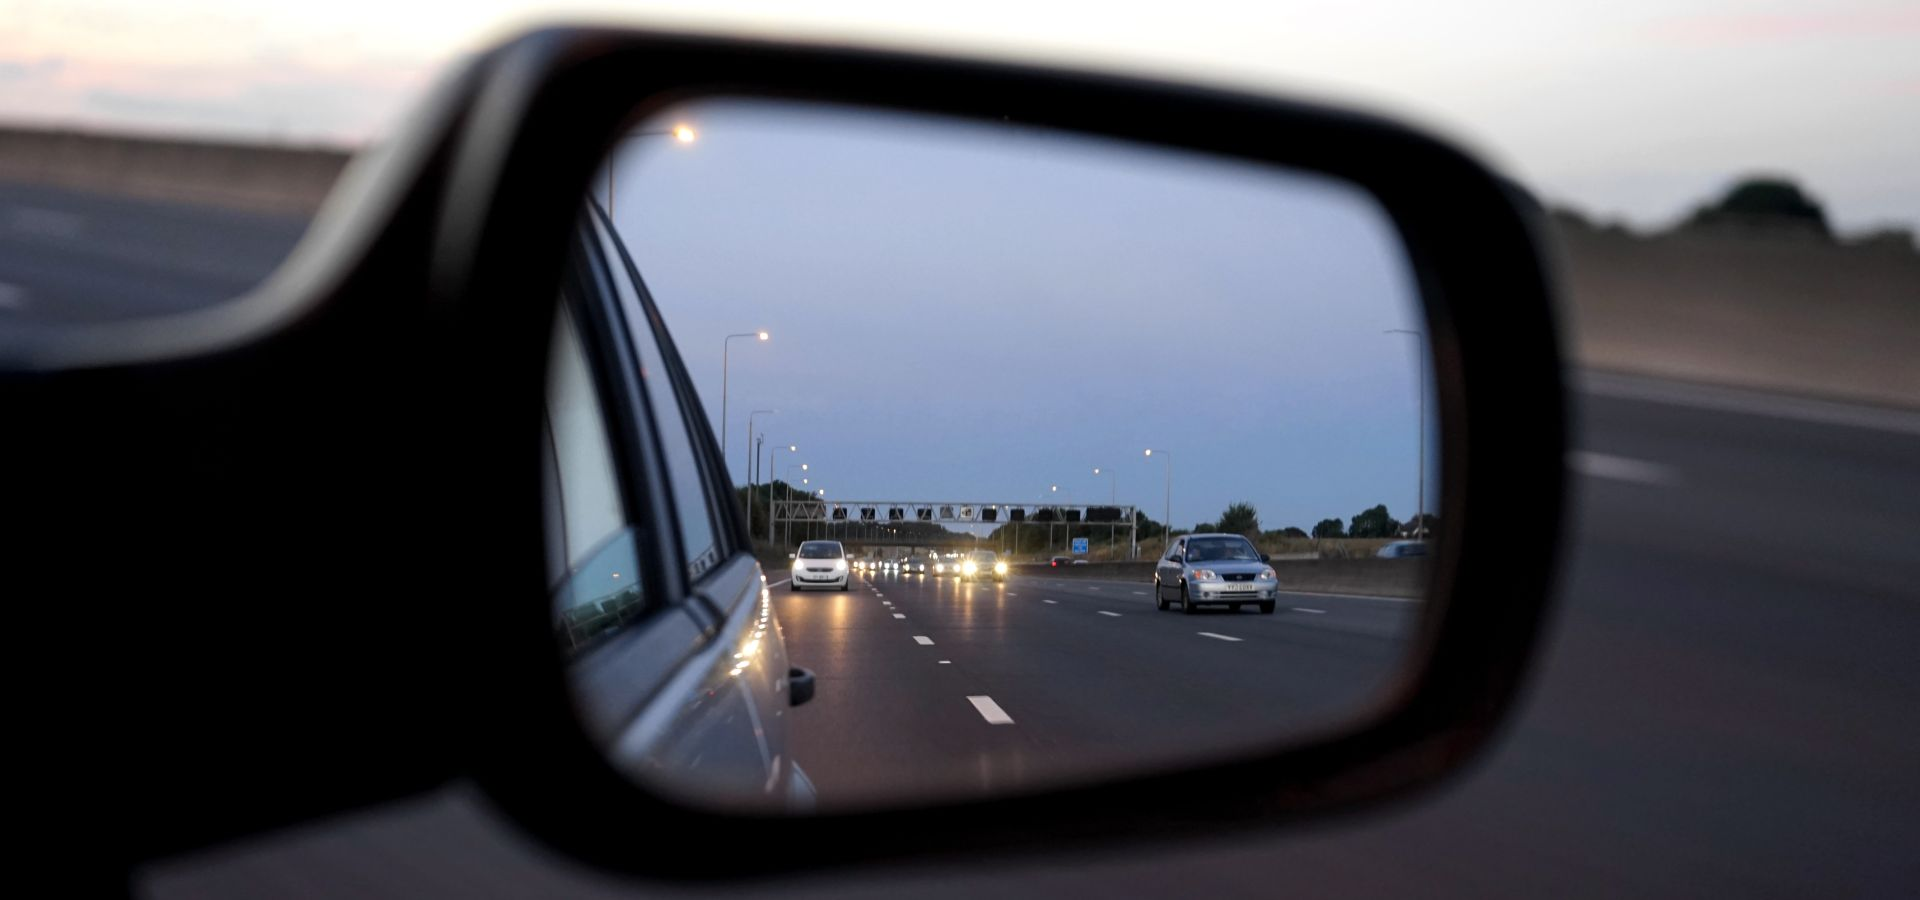 view of the autobahn from a rear view mirror